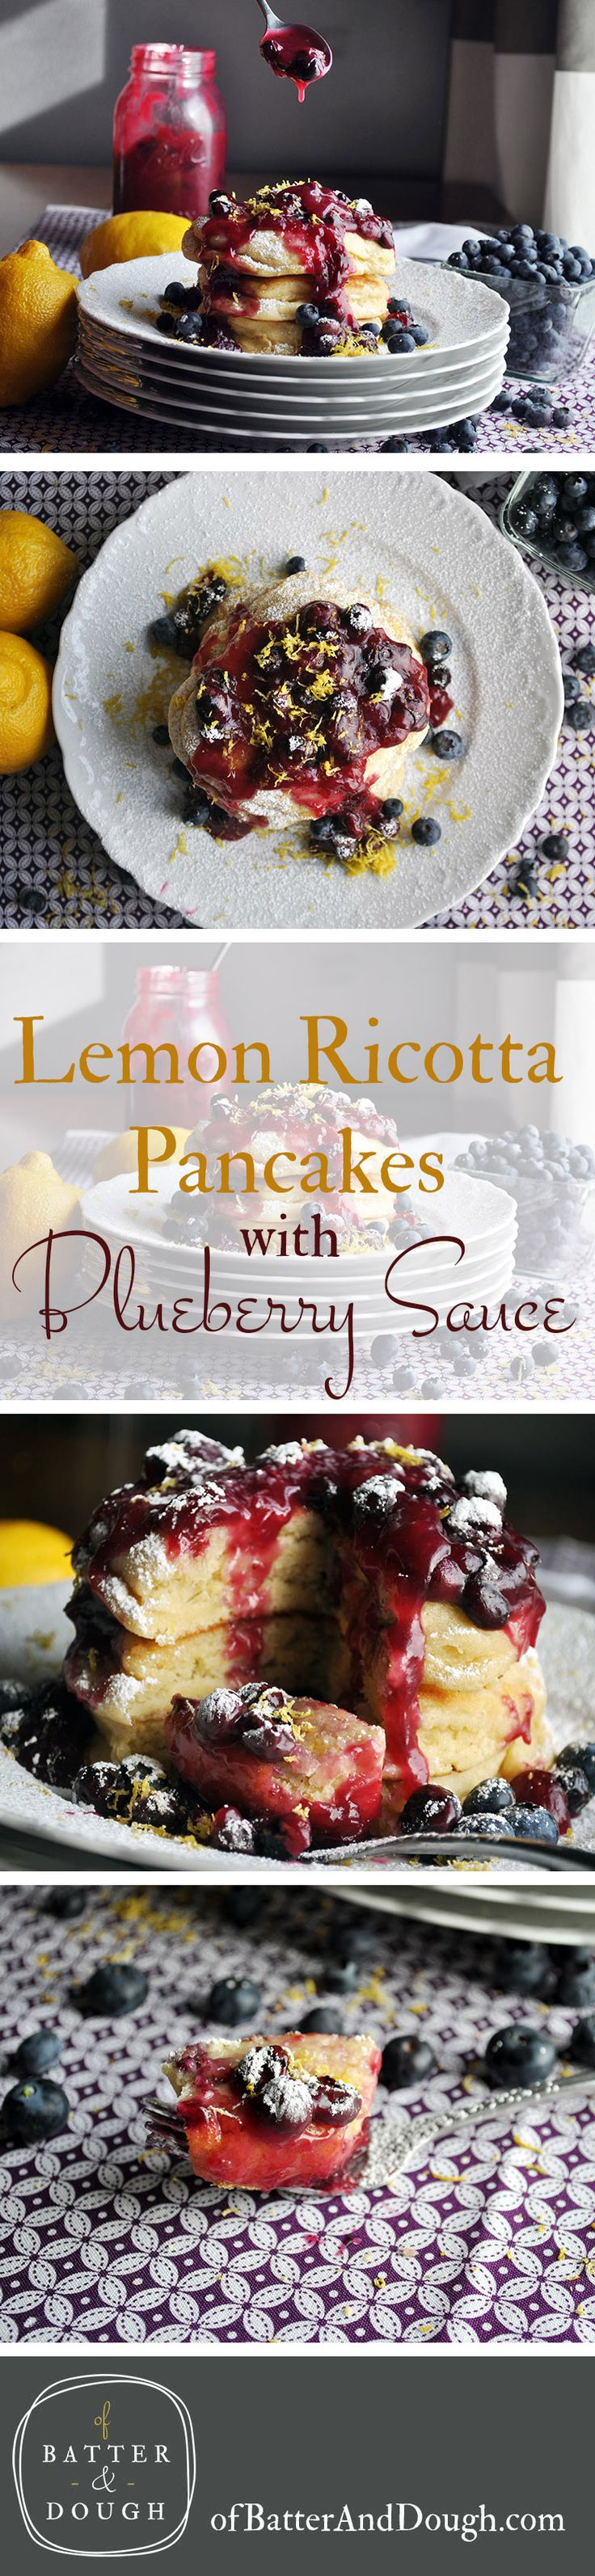 These Lemon Ricotta Pancakes bake up into delightfully tall, fluffy pancakes that are absurdly moist and creamy, tangy and sweet, delicious all on their own, but positively decadent when smothered in homemade blueberry sauce.